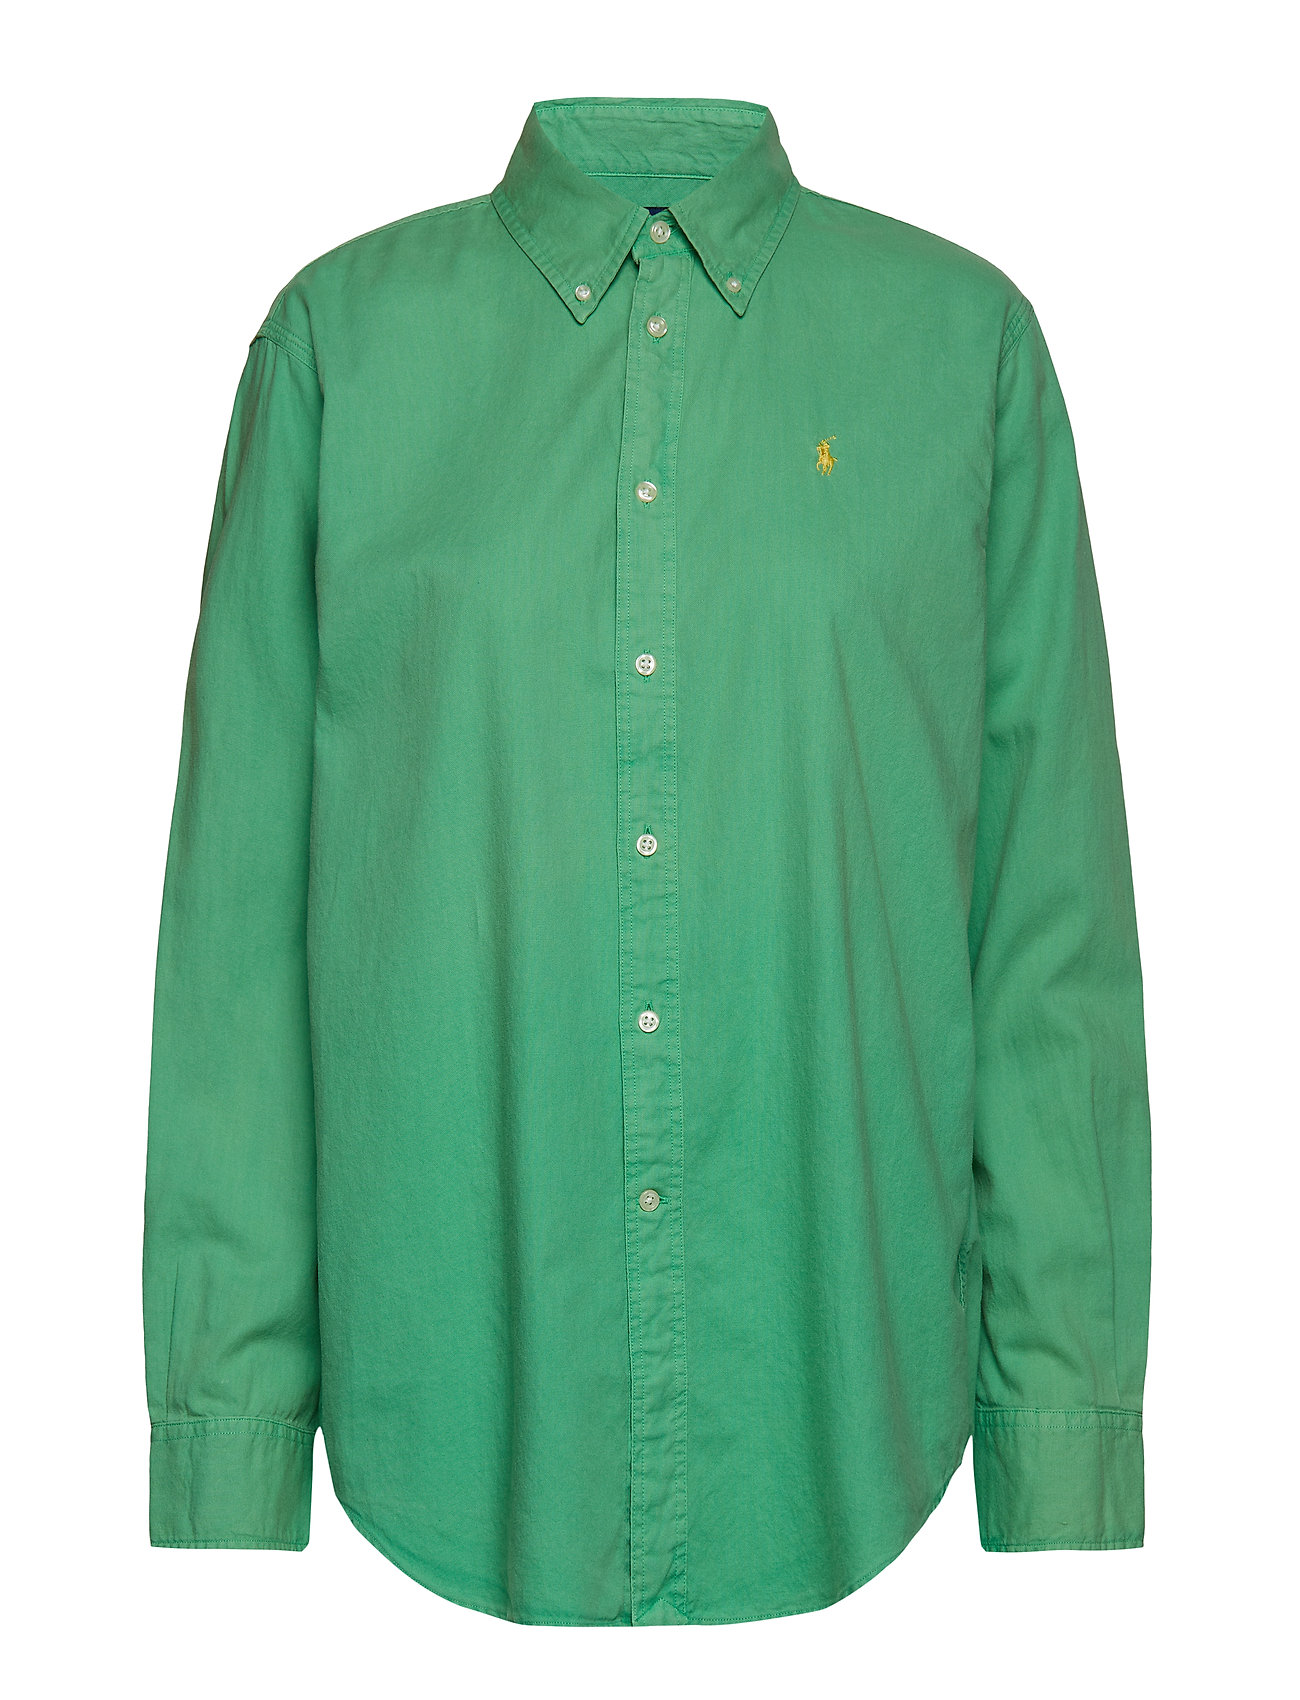 Polo Ralph Lauren Cotton Oxford Shirt